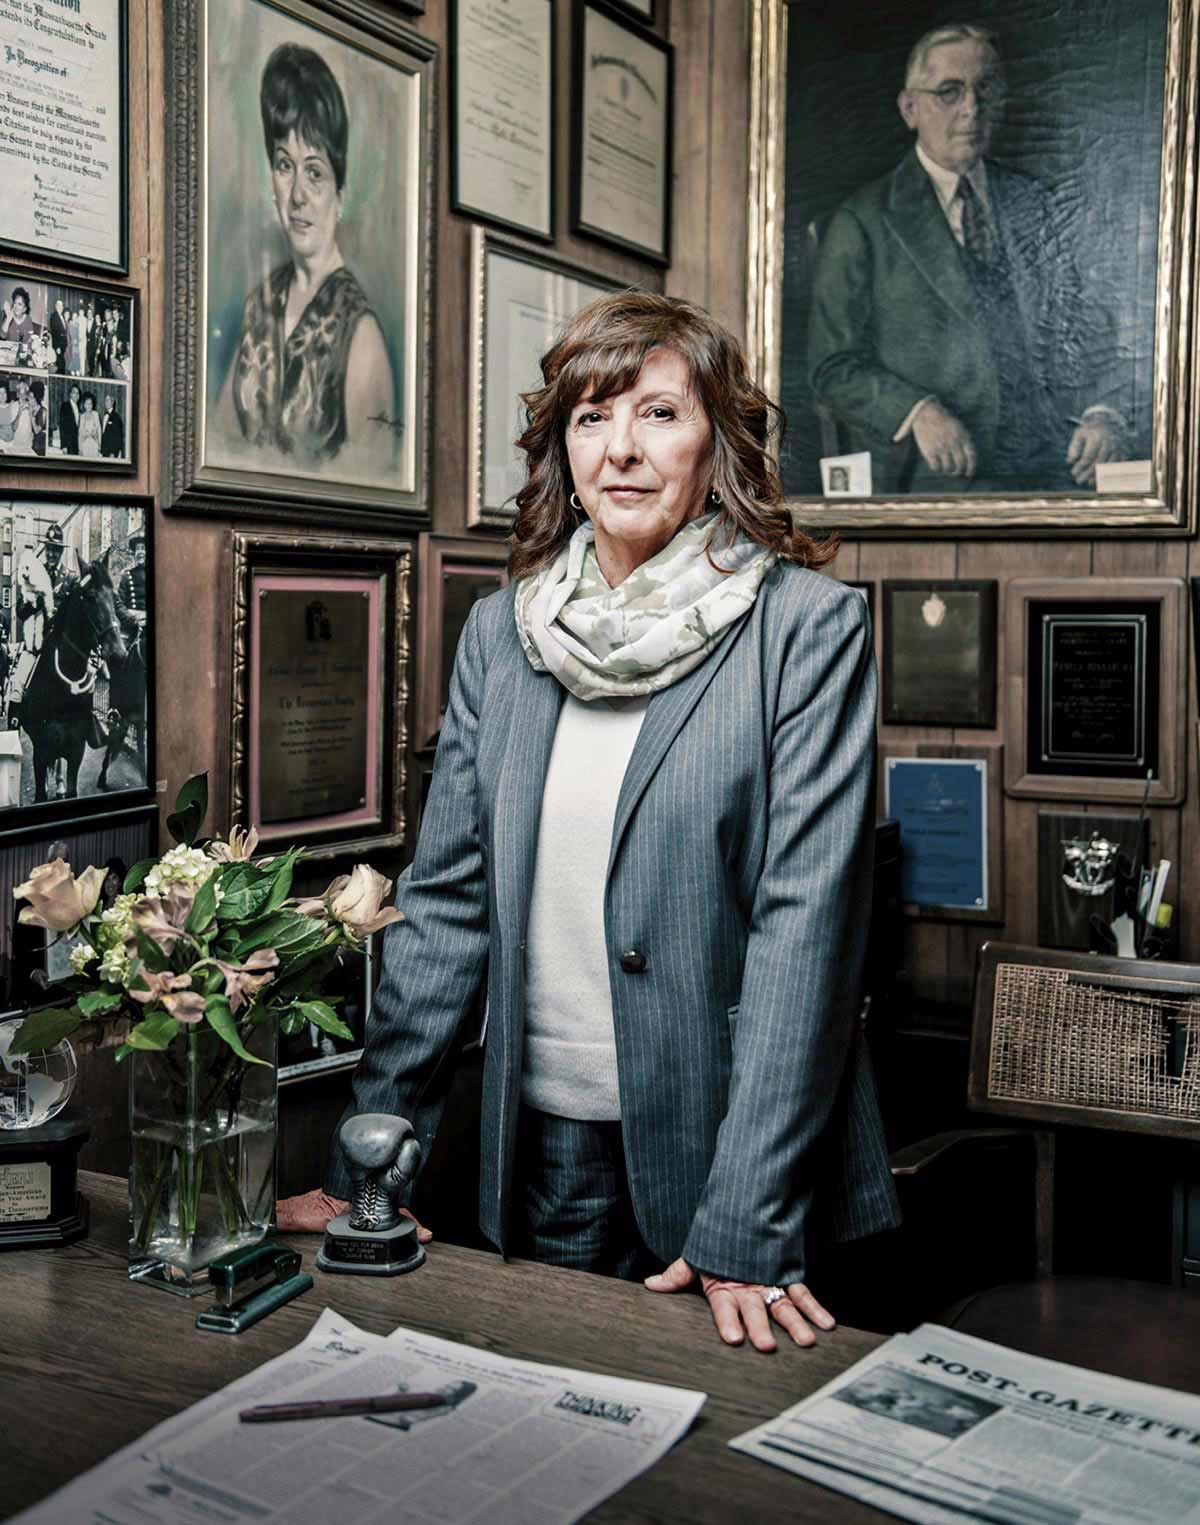 Post-Gazette's publisher and editor Pamela Donnaruma, photo by Webb Chappell.  Courtesy of Boston Magazine.